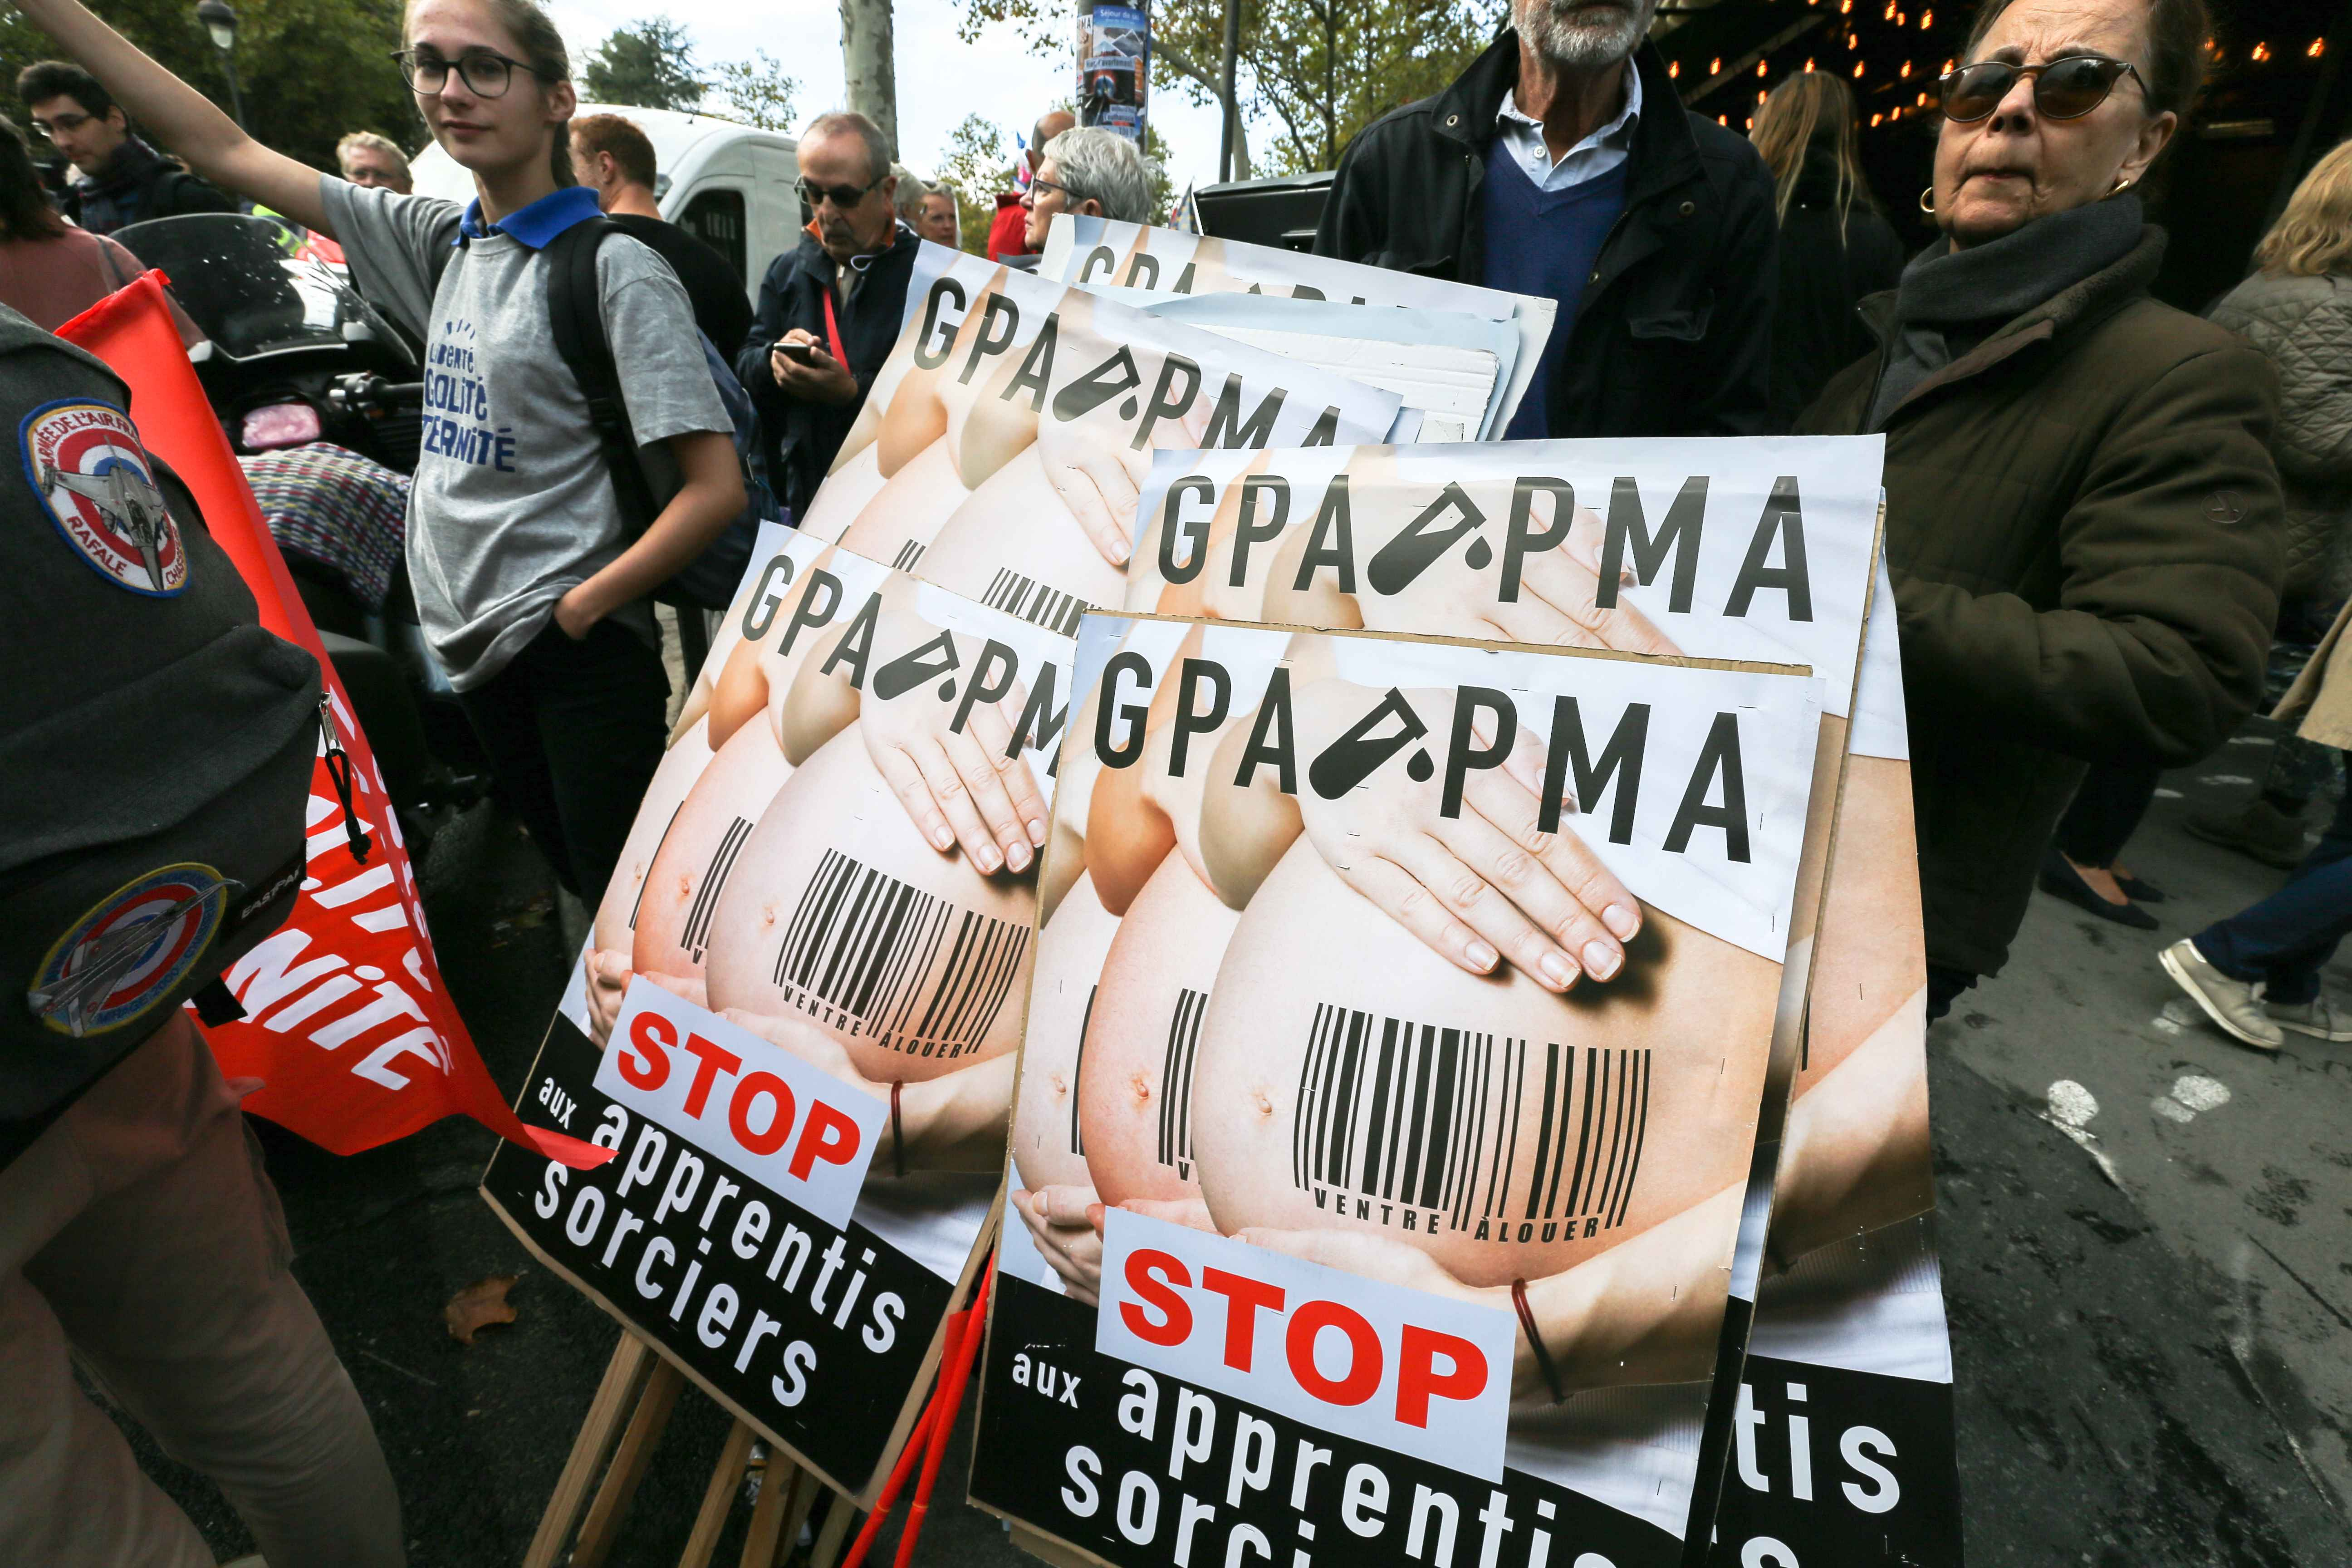 Signs against the PMA (Medically Assisted Reproduction) for all women and the GPA (Surrogacy) during a protest against a government plan to let single women and lesbians become pregnant with fertility treatments, on October 6, 2019 in Paris. The French Nat